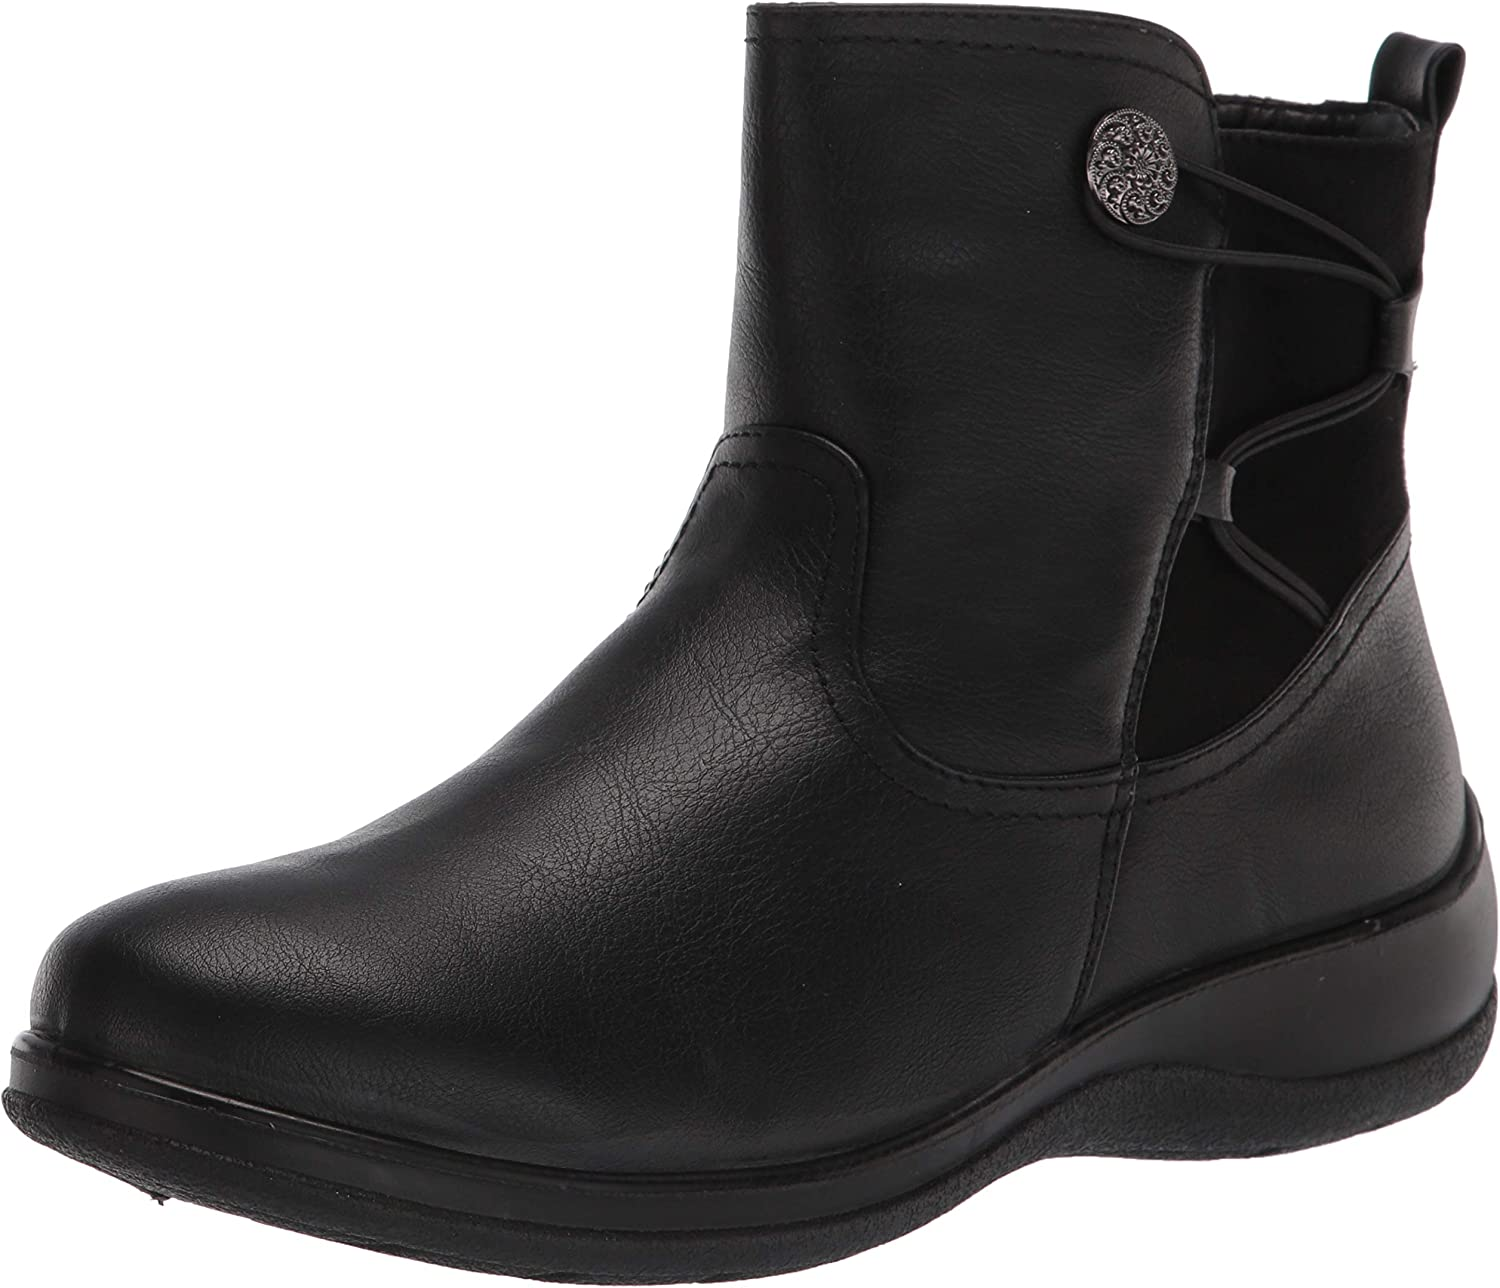 Flexus by Spring Step Women's Ankle Boot